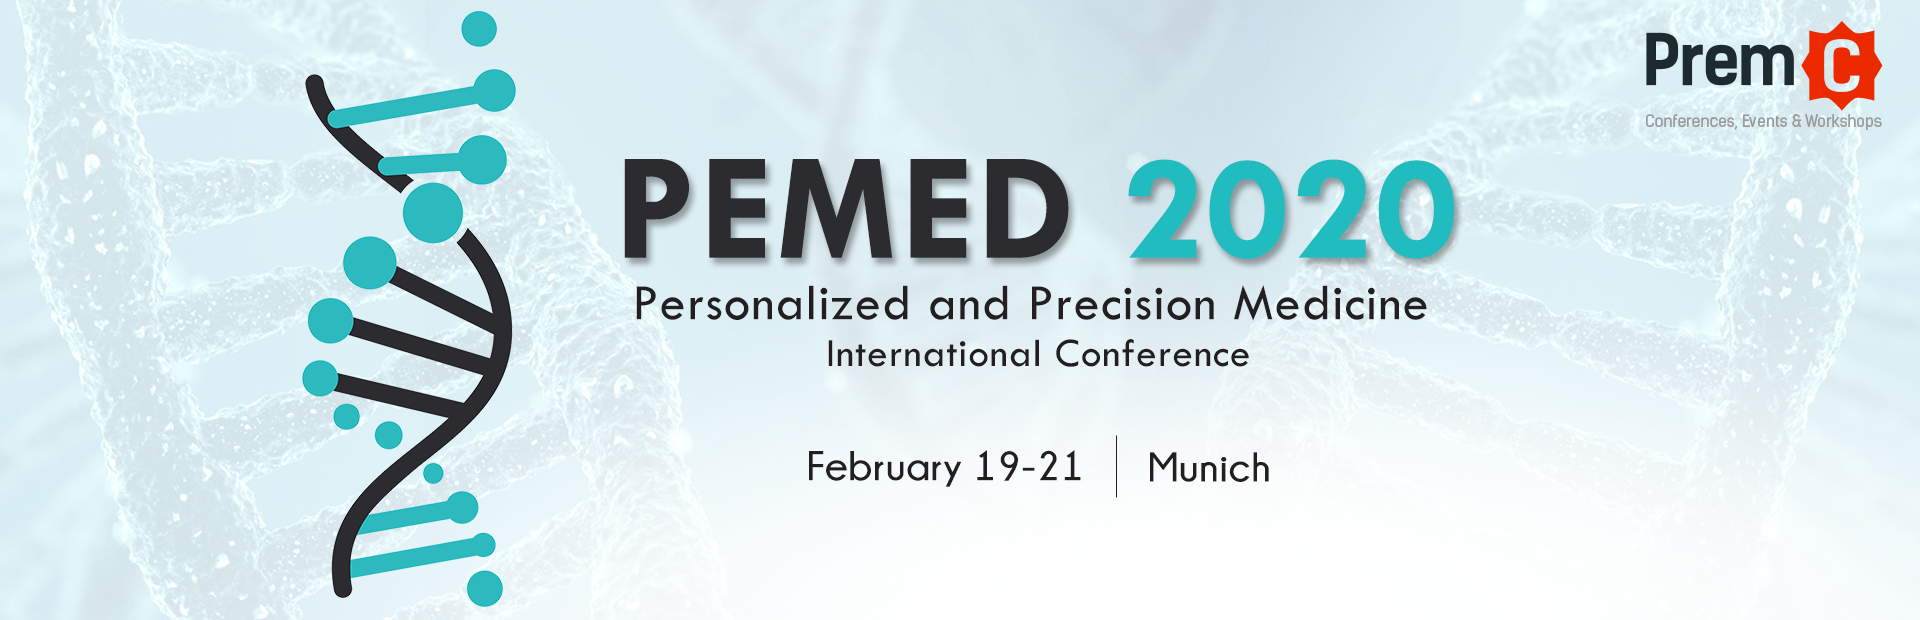 Personalized and precision medicine international conference - PEMED 2018